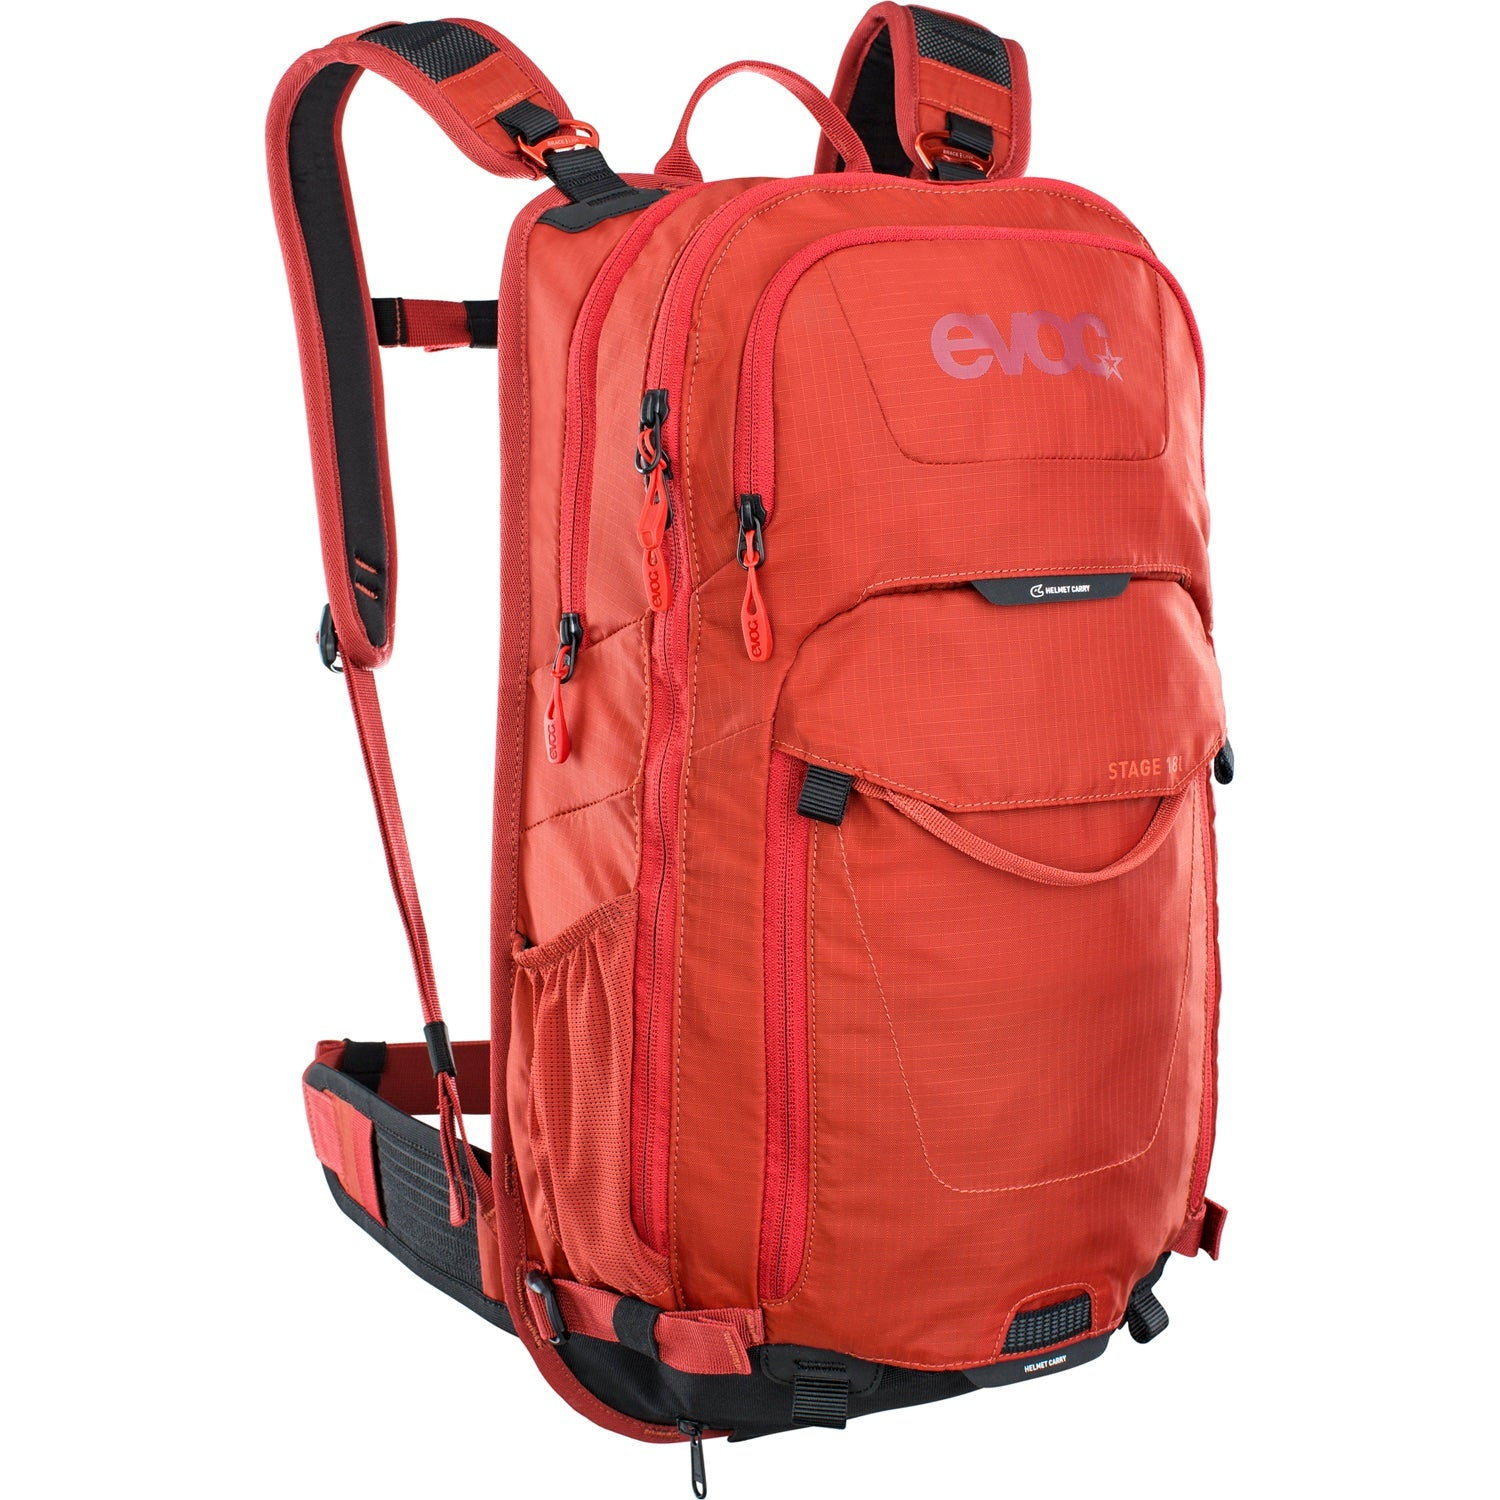 Mochila Evoc Stage18i Chili Red